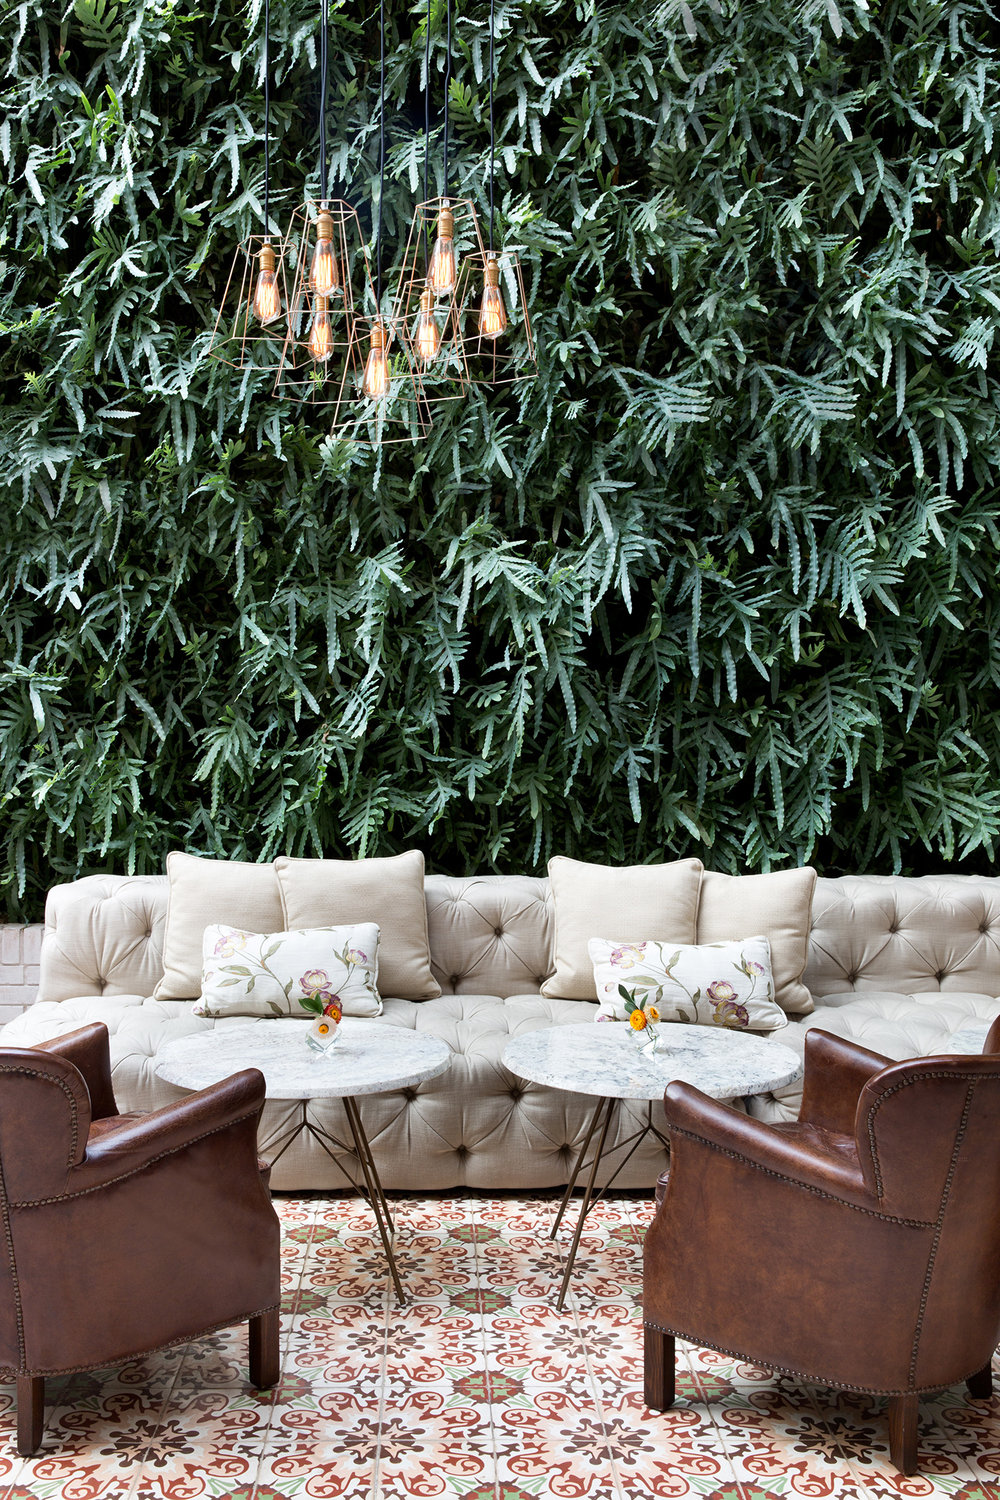 The Four Seasons Casa Medina Bogat á  in Columbia. (Photo: Courtesy Four Seasons Casa Medina)